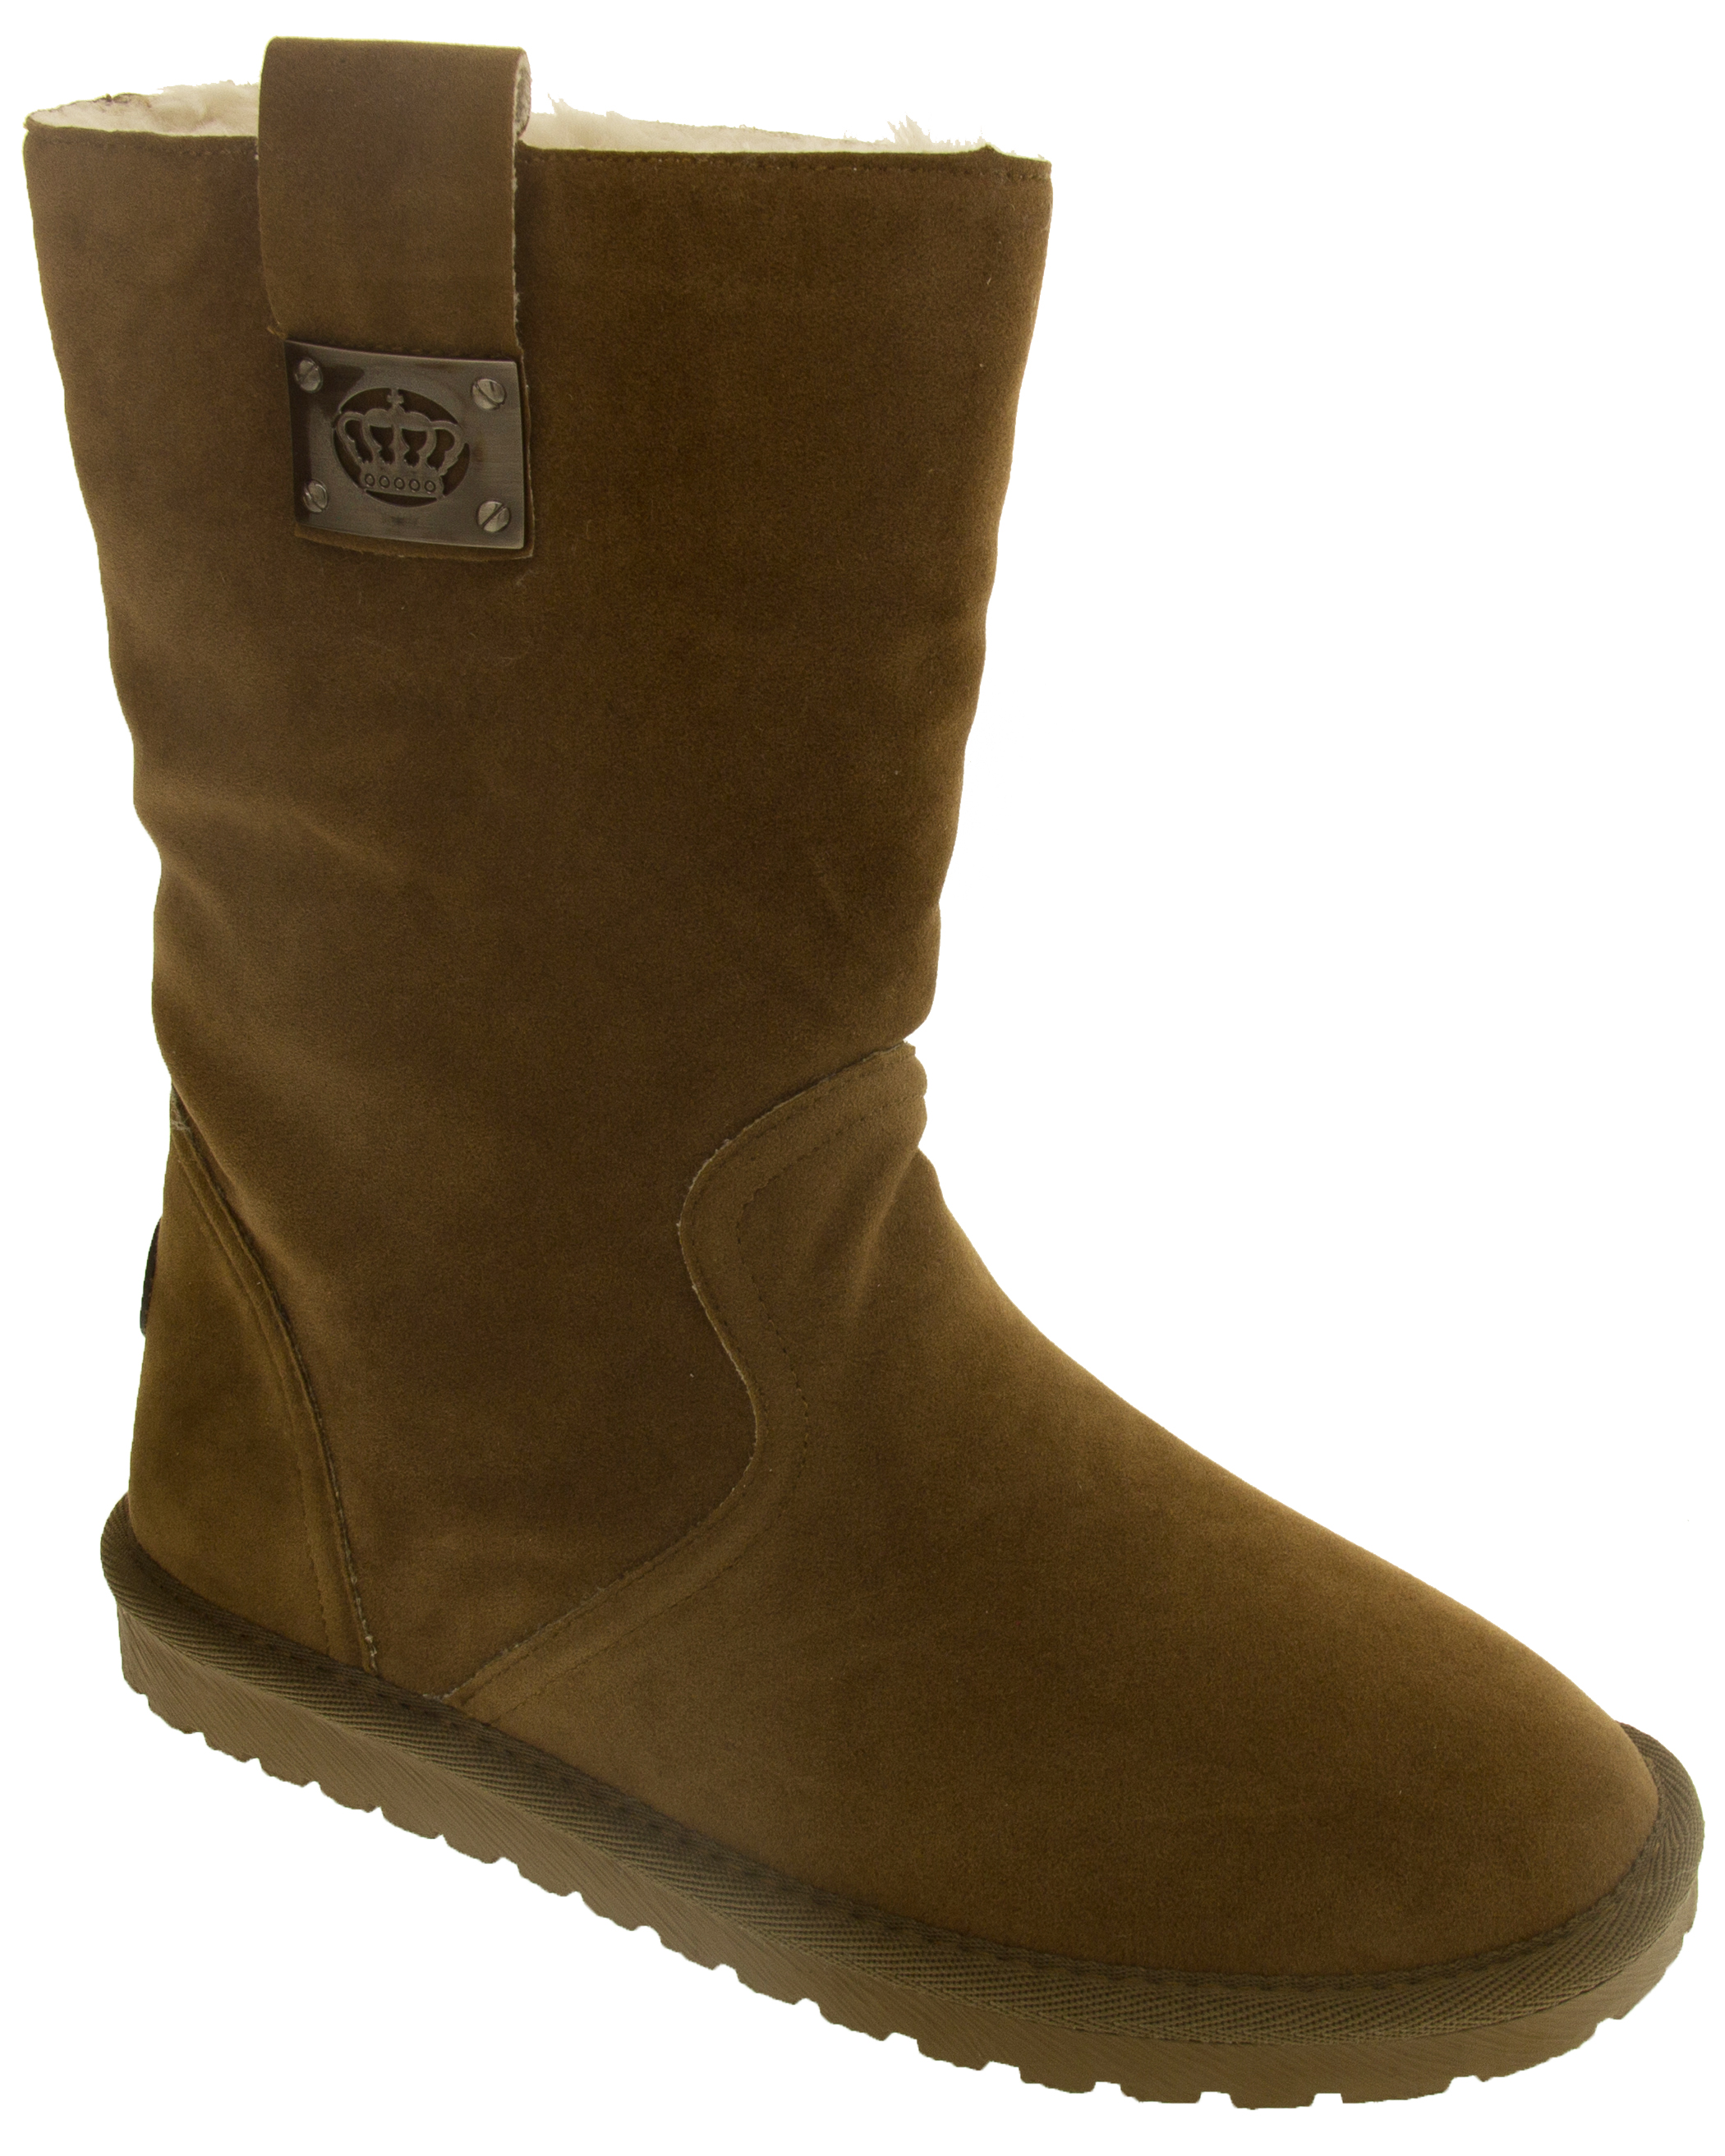 Womens Keddo Faux Suede Flat Winter Boots Warm Lined Comfort Boot Sz 3 4 5 6